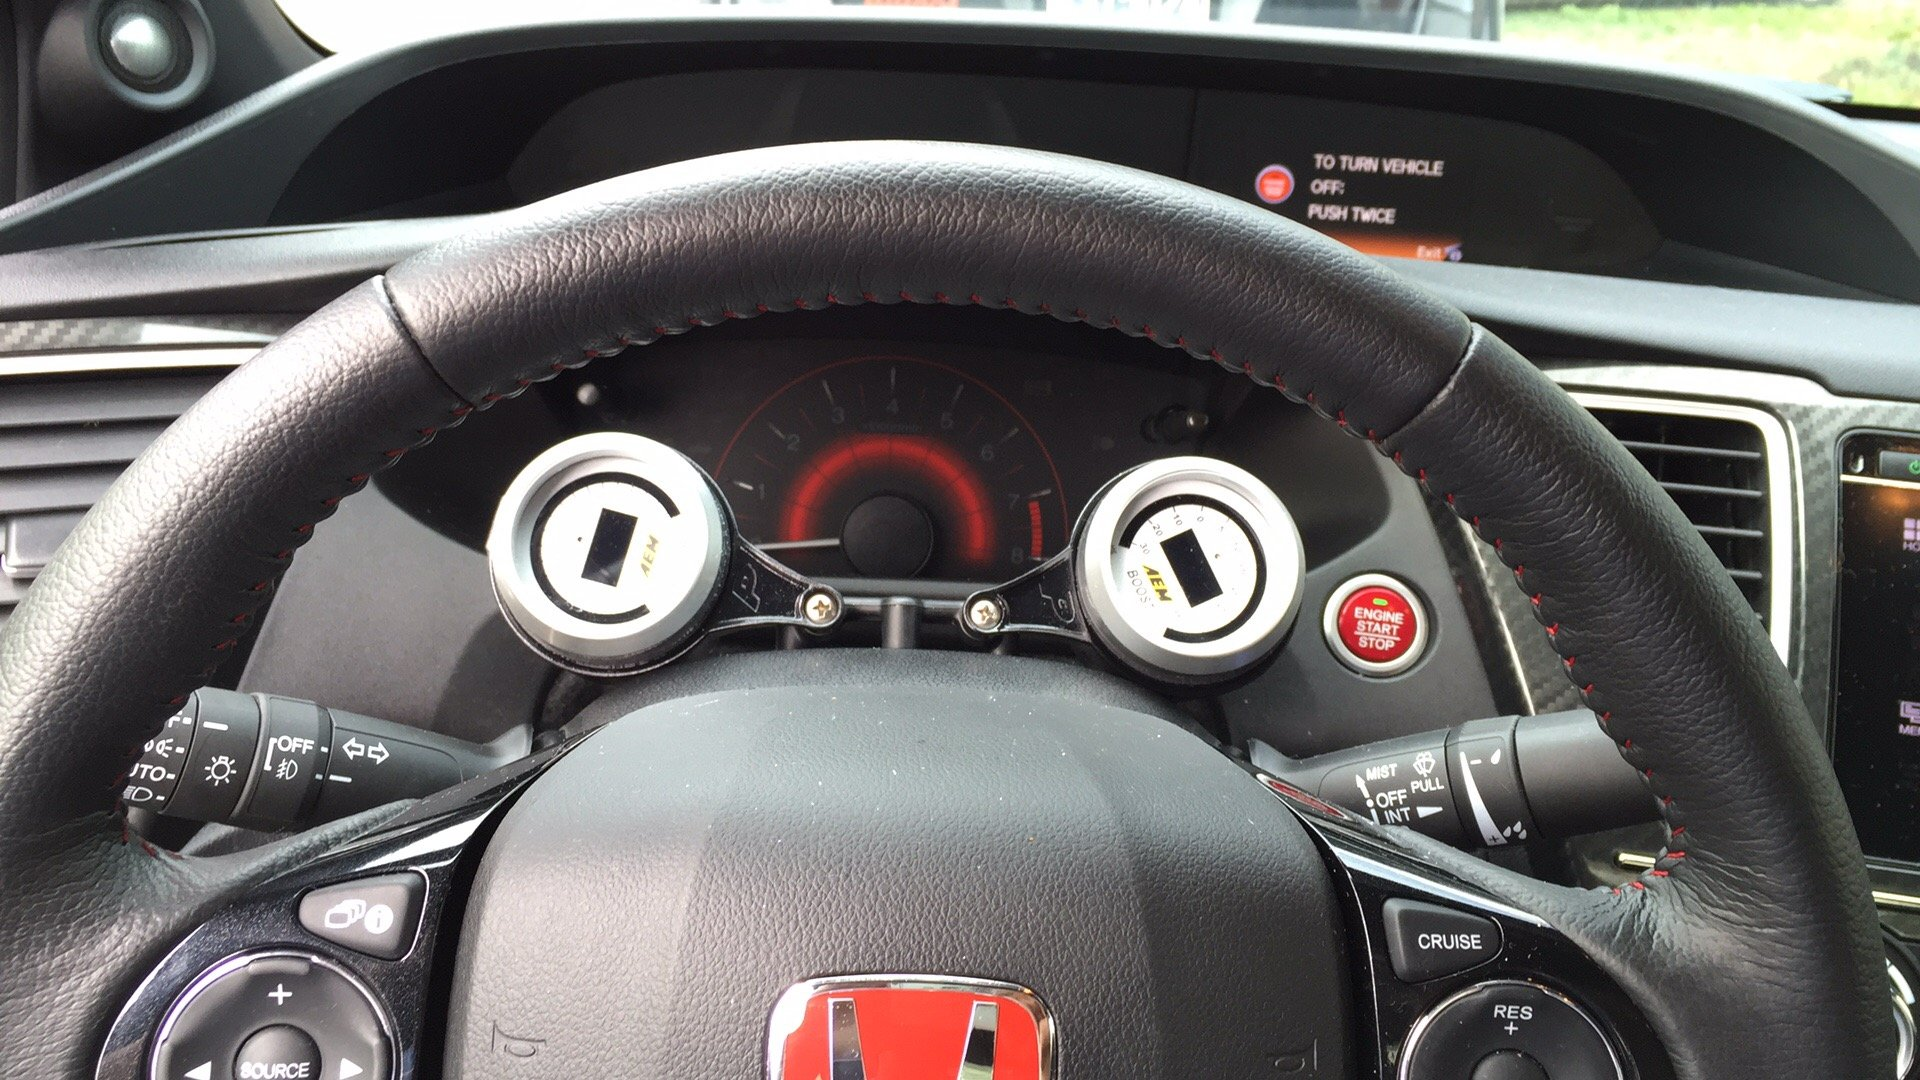 Is anyone running a boost gauge? Where did you mount?